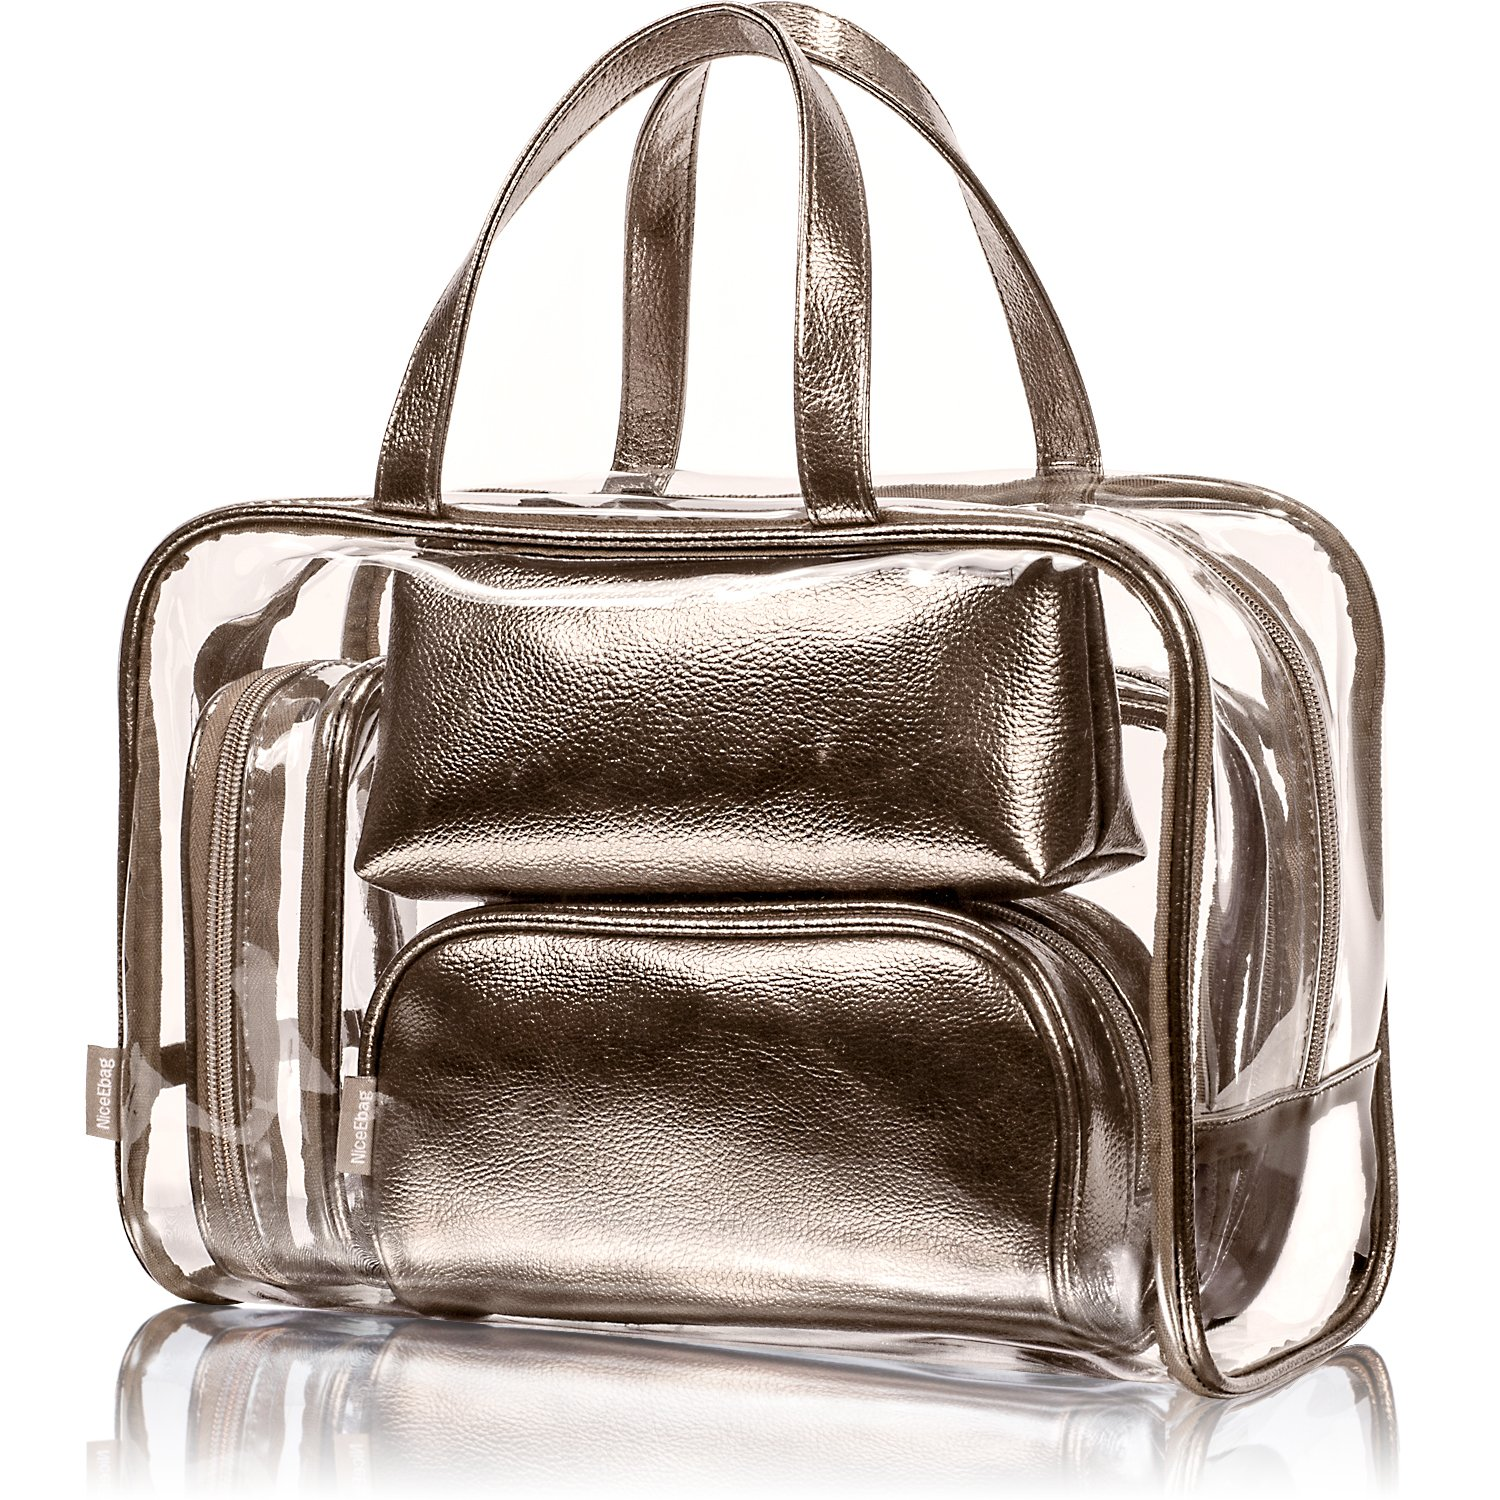 NiceEbag 5 in 1 Cosmetic Bag & Case Portable Carry on Travel Toiletry Bag Clear PVC Makeup Train Case Quart Luggage Pouch Transparent Handbag Beach Tote Bag Organizer for Men and Women (Bronze)